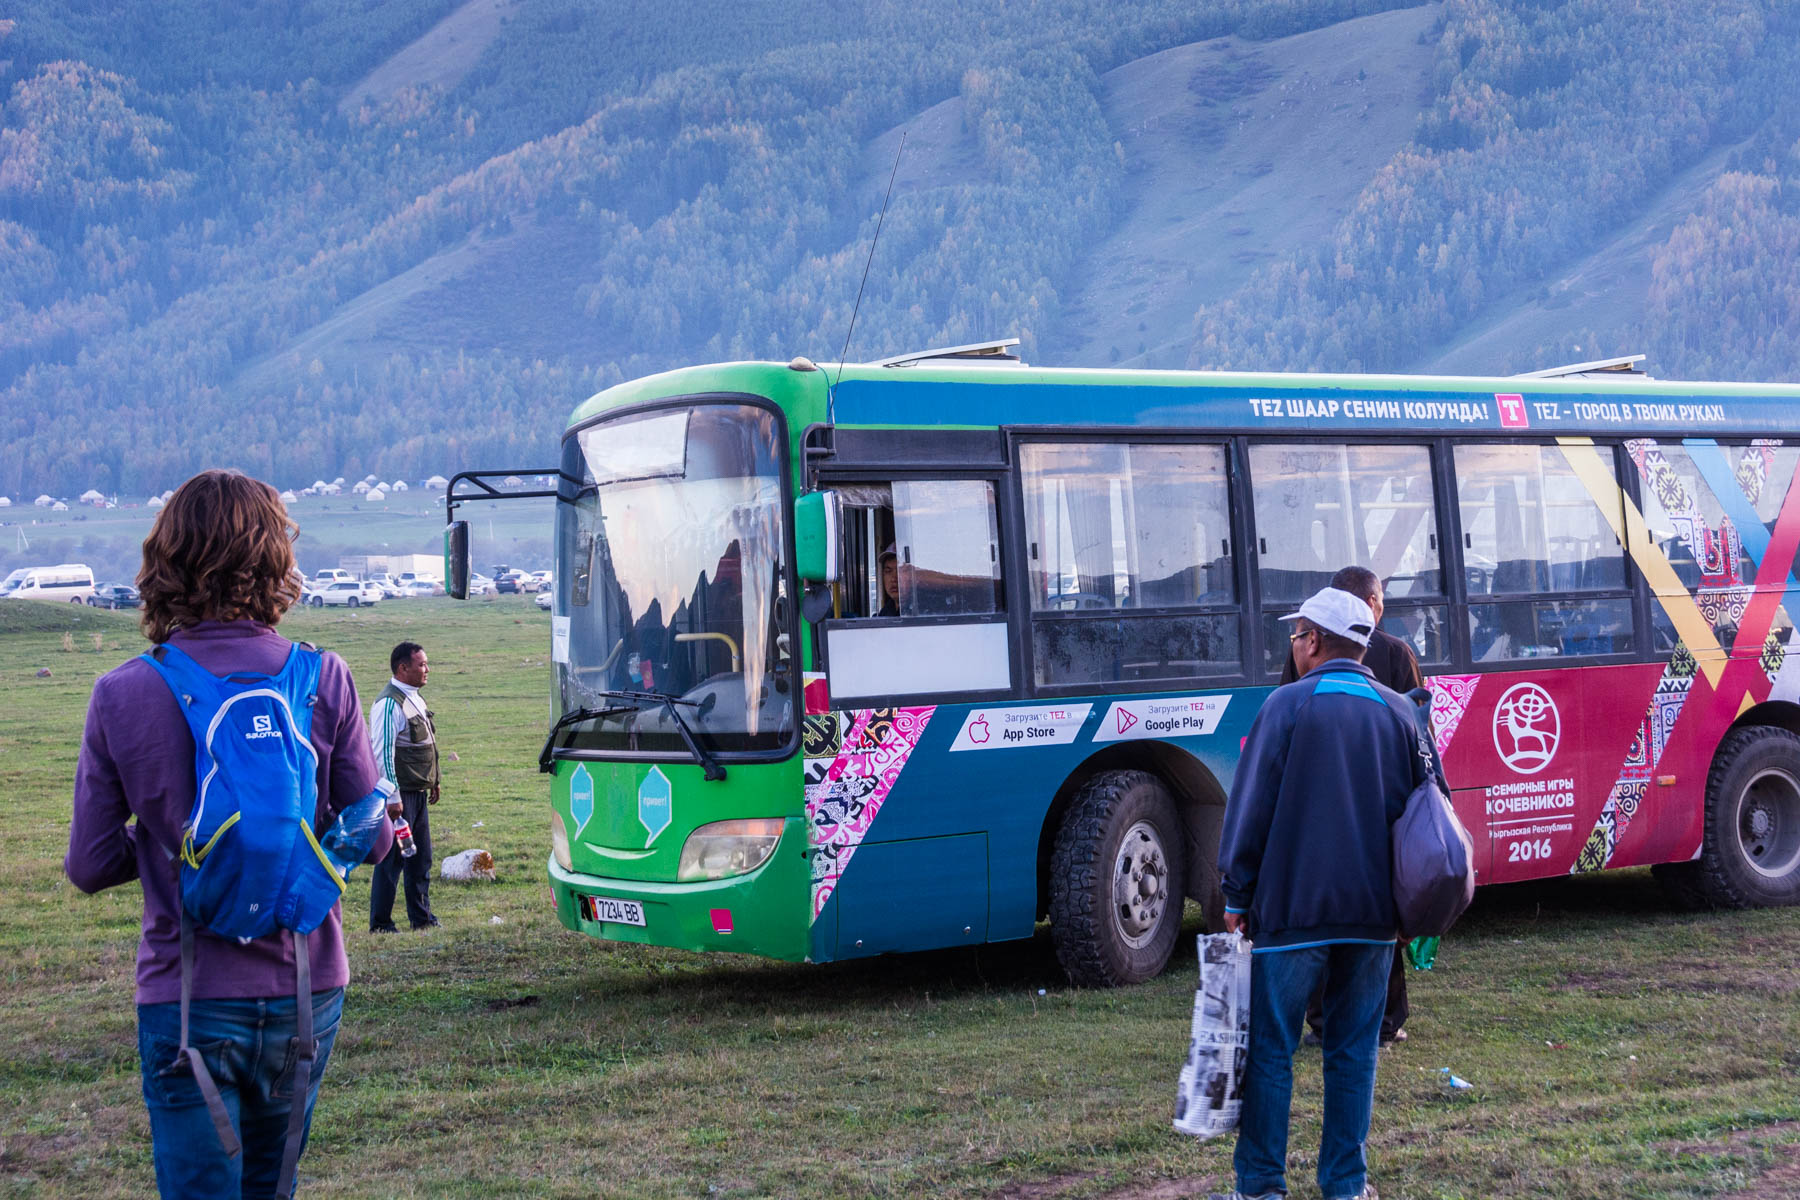 The free shuttle at the 2016 World Nomad Games in Kyrgyzstan - Are the 2018 World Nomad Games worth the trip? - Lost With Purpose